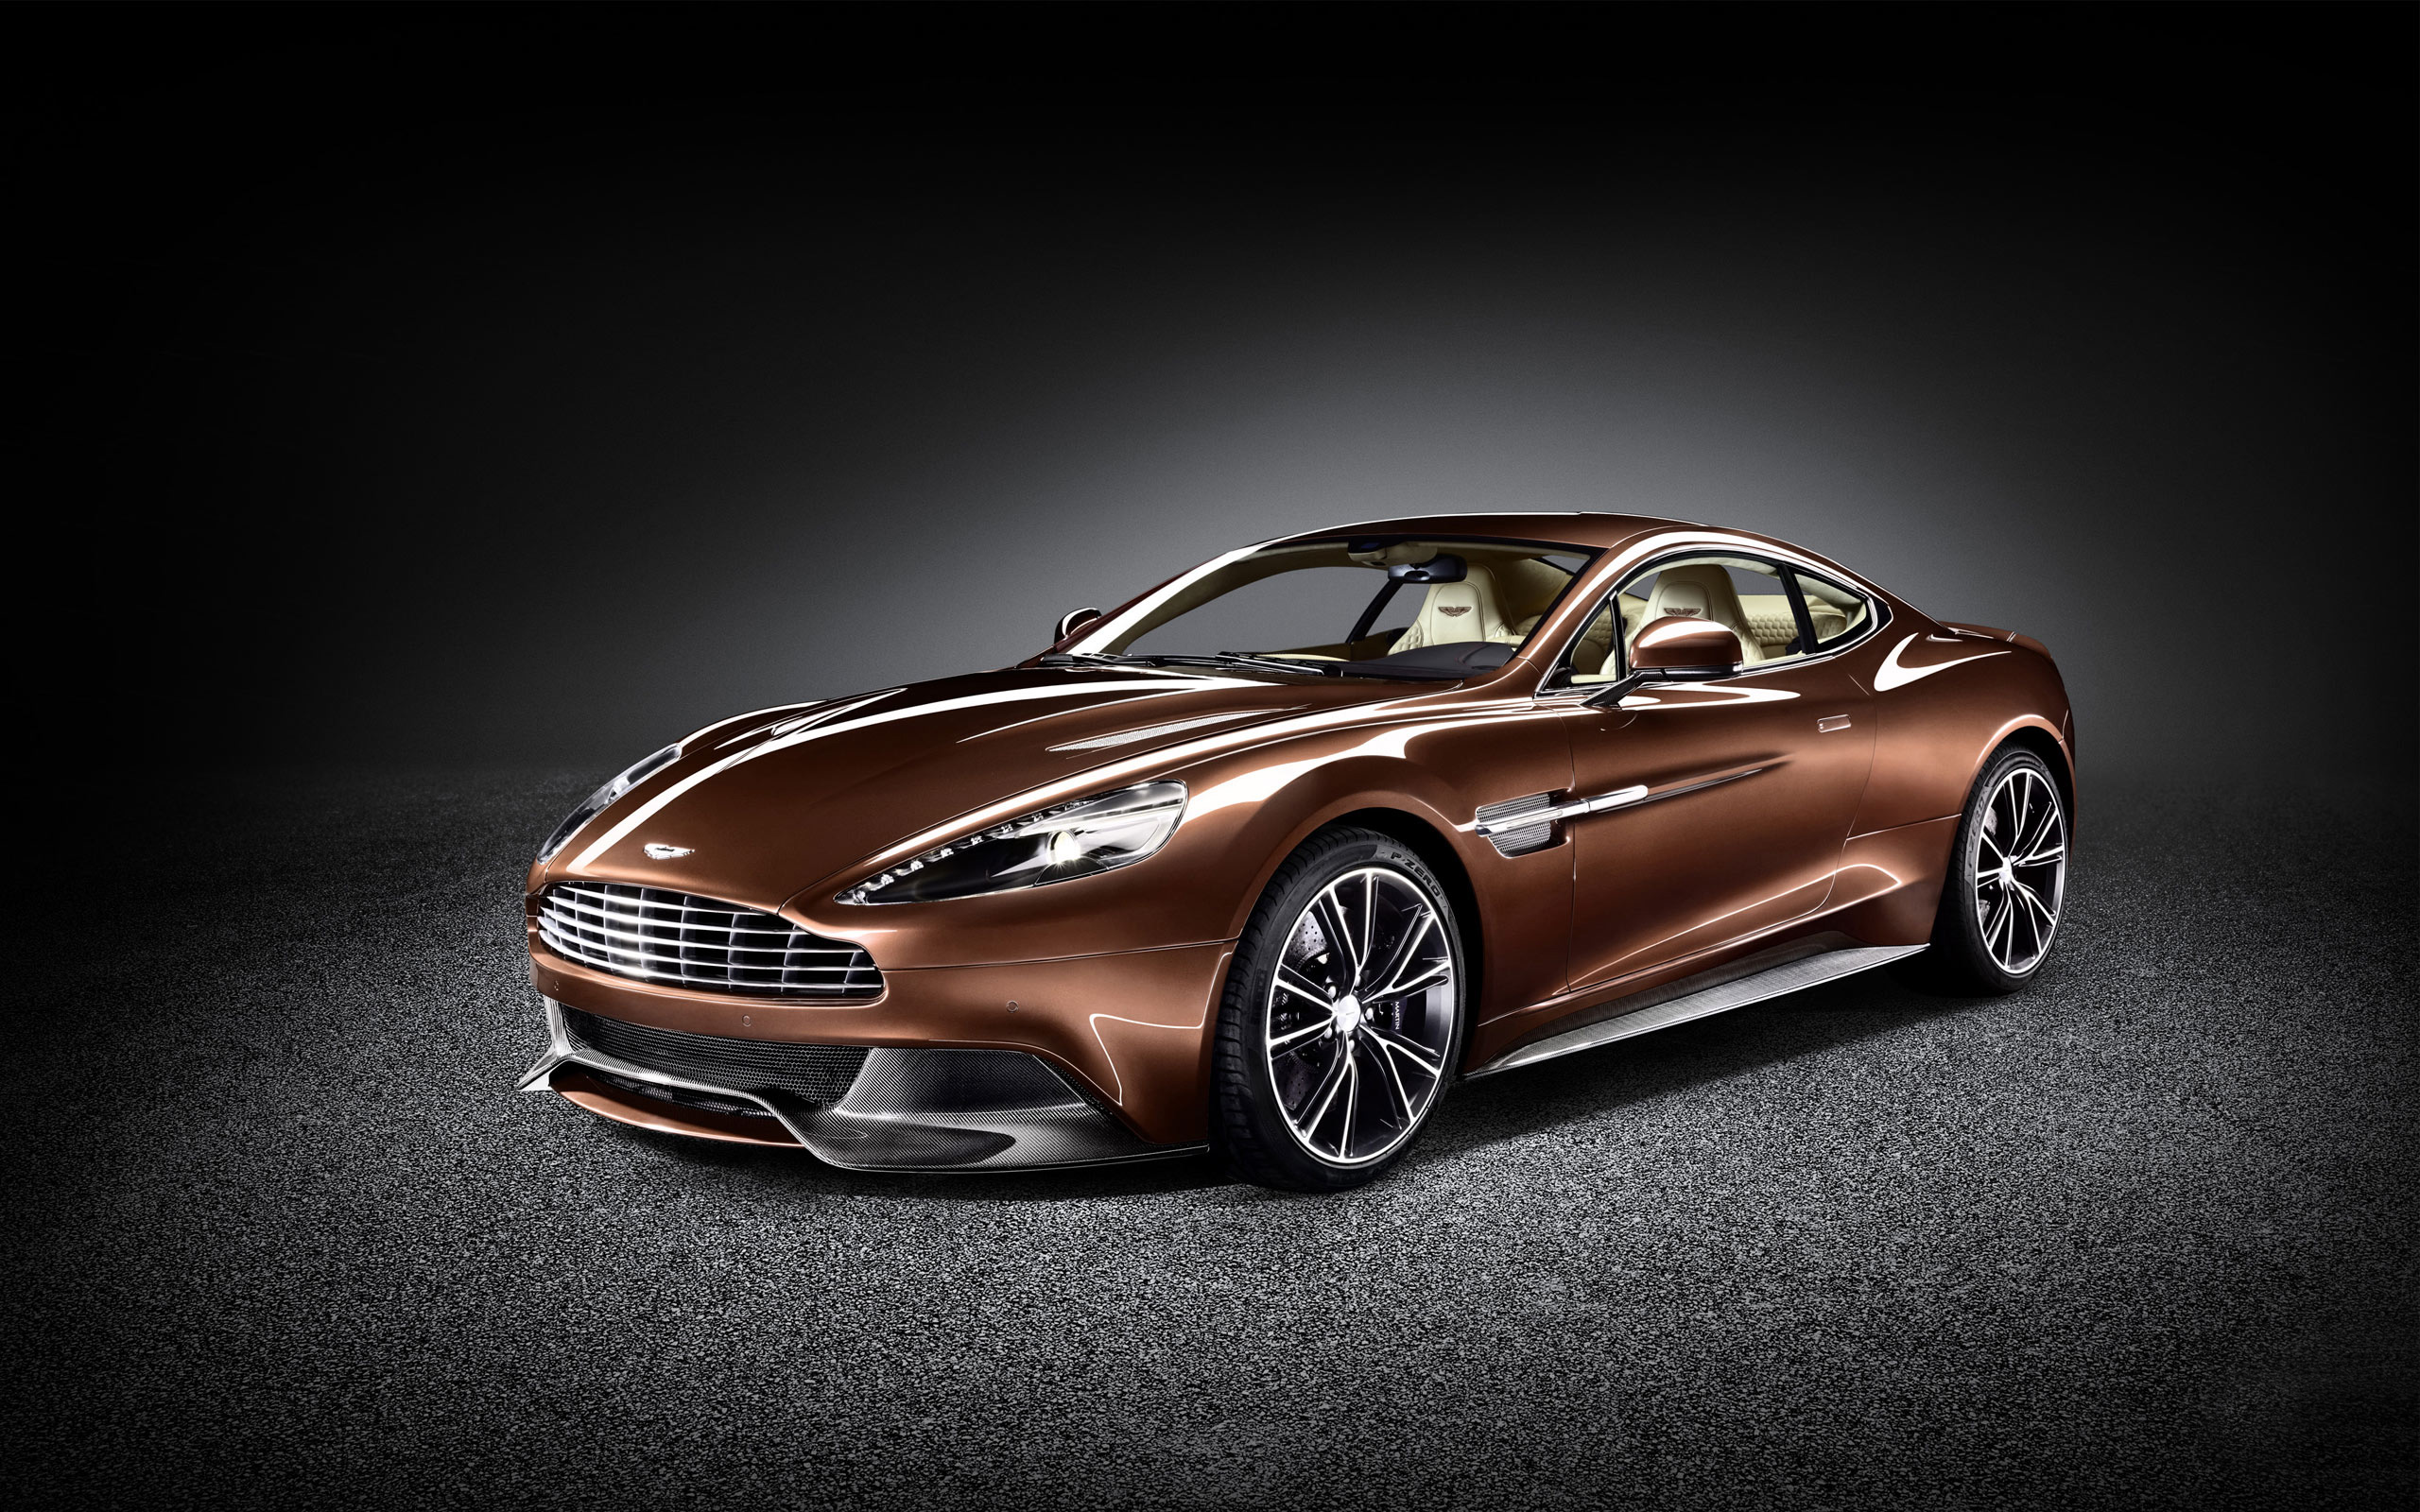 2013 aston martin vanquish 2 wallpaper | hd car wallpapers | id #2817